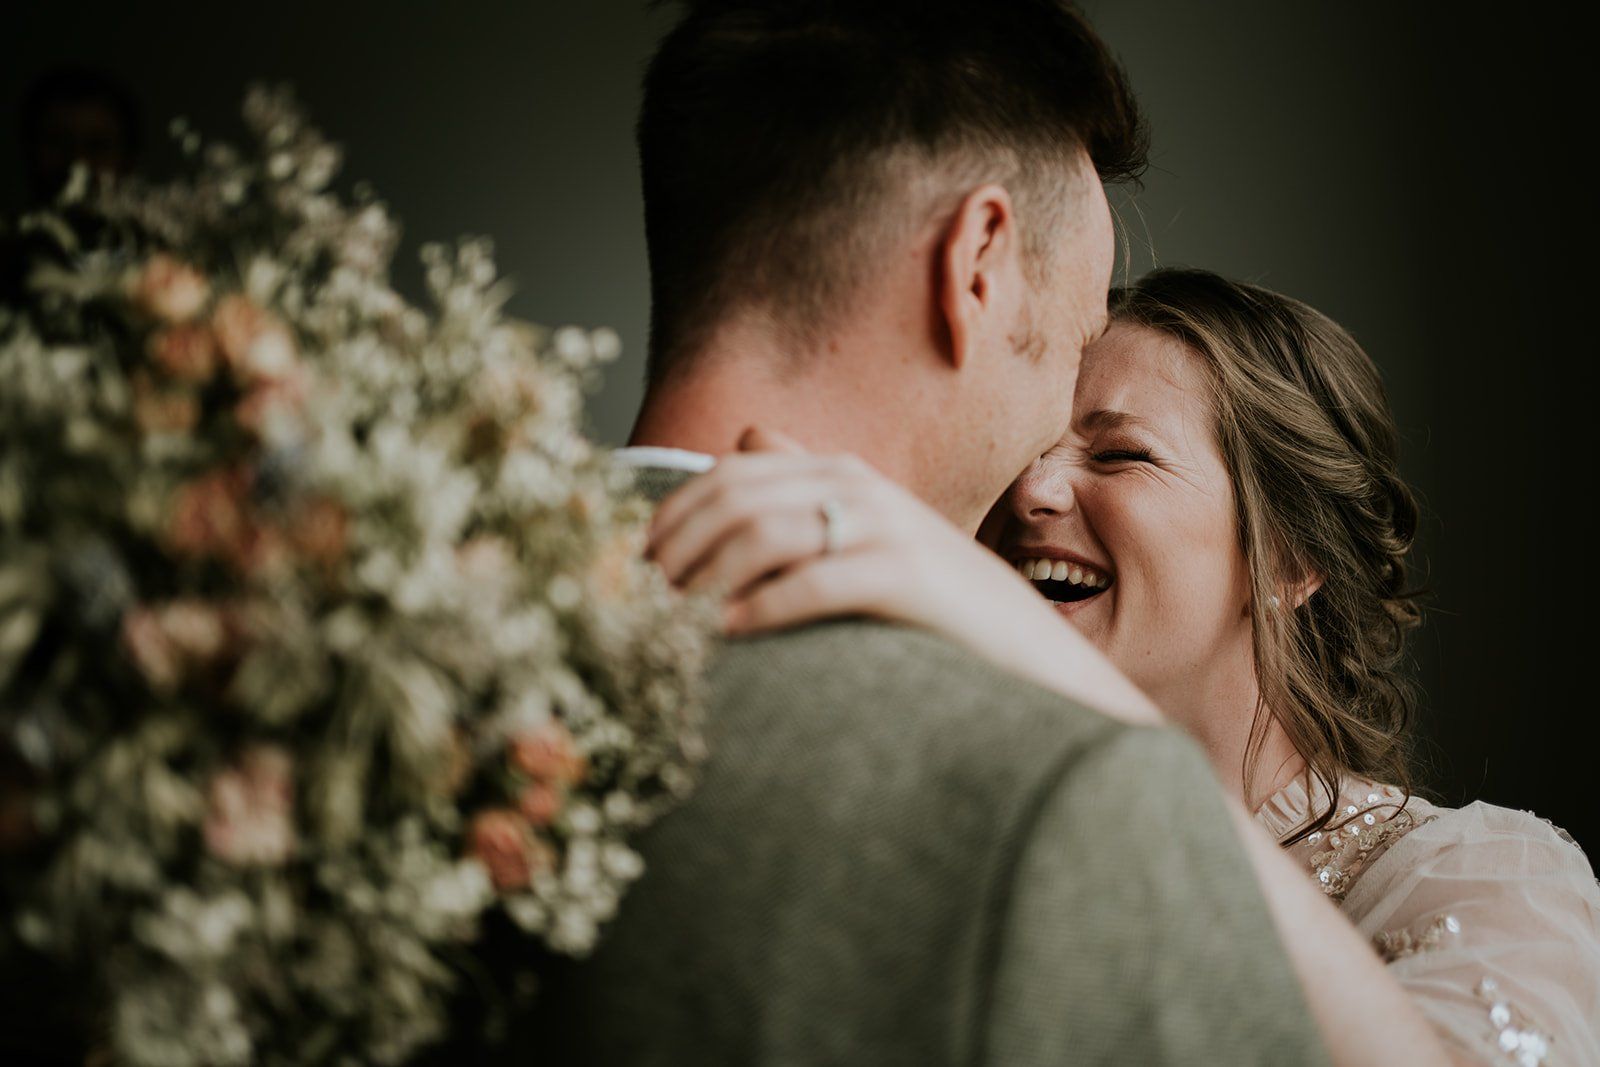 a close up shot of a brides head close to grooms she laughs with her arms around his head